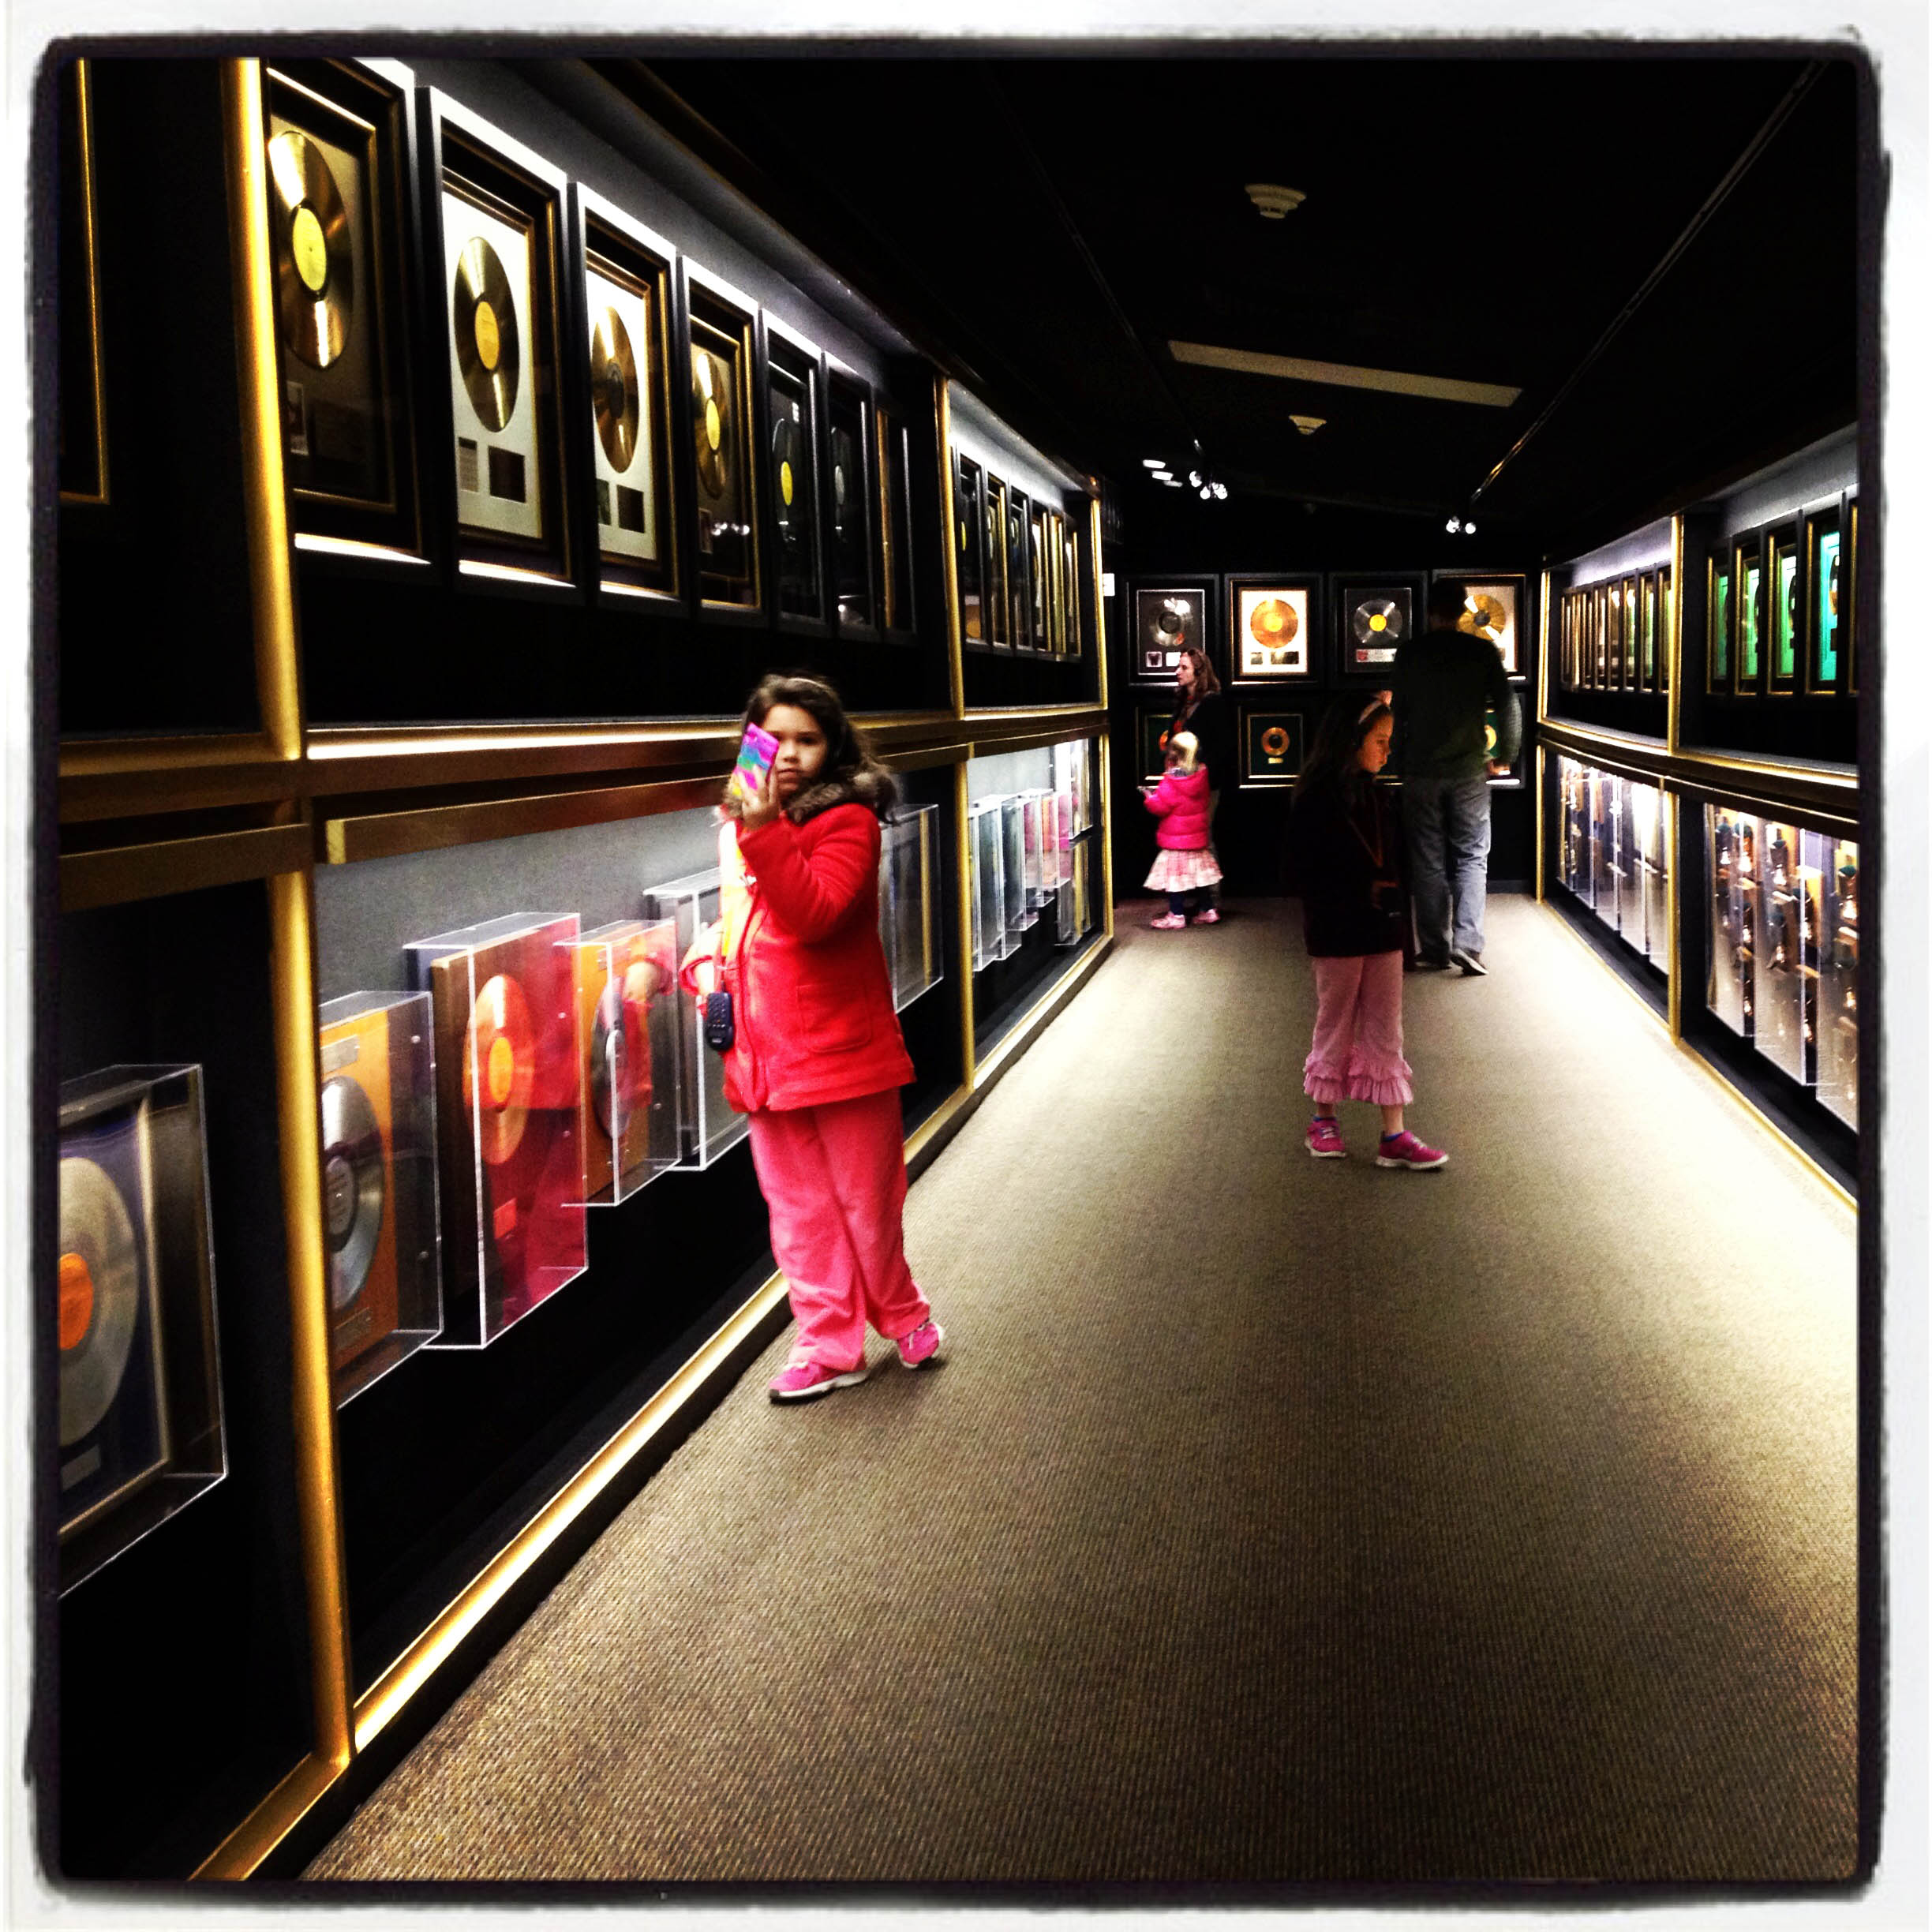 MEMPHIS, TN 01/03/14 A young girl takes a photo with her cell phone in the Trophy Room at Graceland. The room is filled with gold and platinum records and awards from around the world.  Presley had 18 number one hits. CLOE POISSON|cpoisson@courant.com